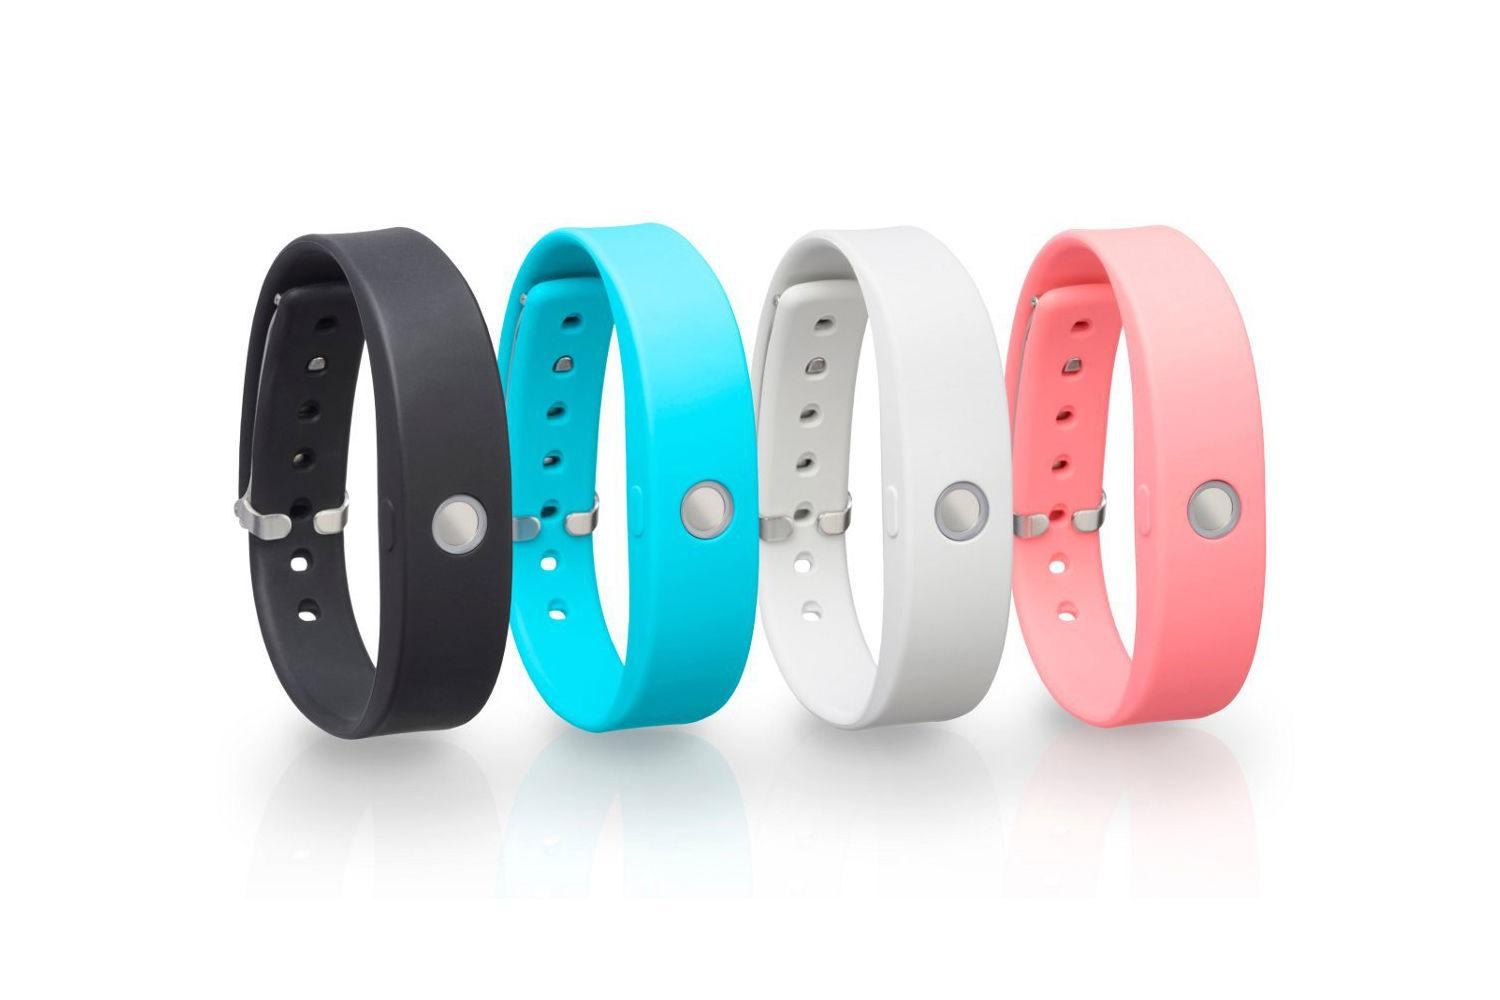 Toshiba Launches a Colorful Fitness Band in Japan ...